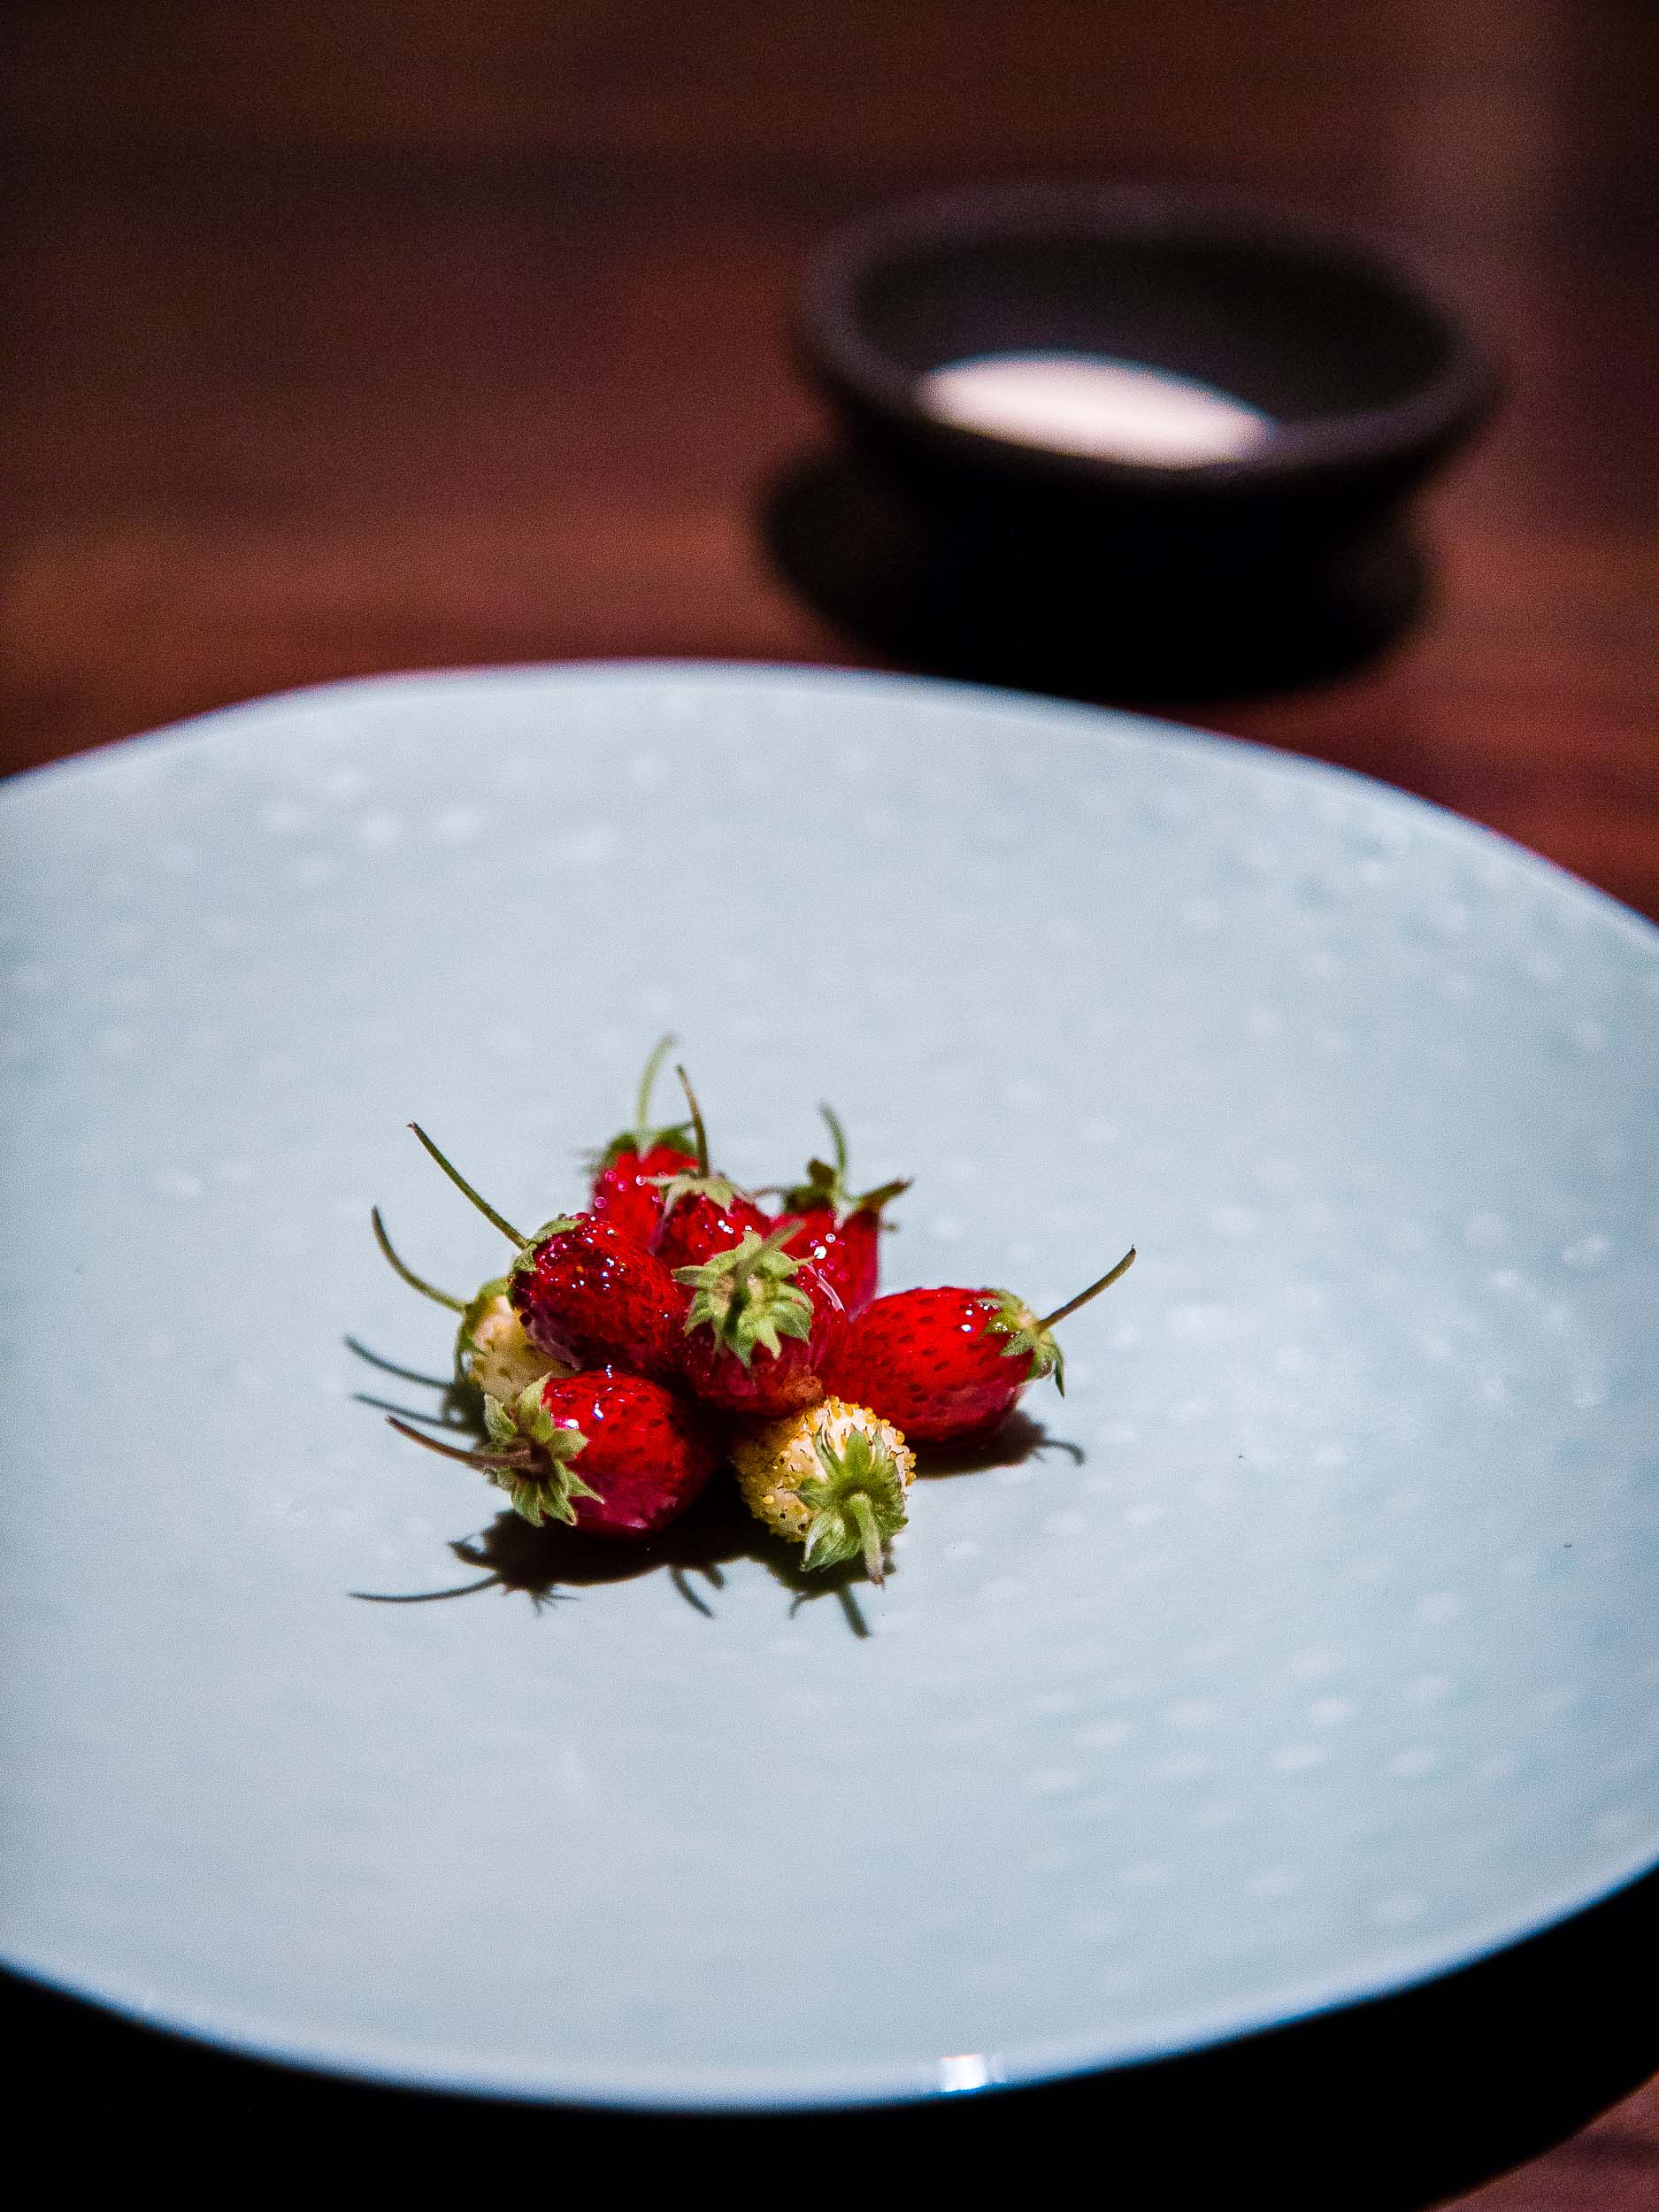 Strawberries dipped in their own juices and served with cream.